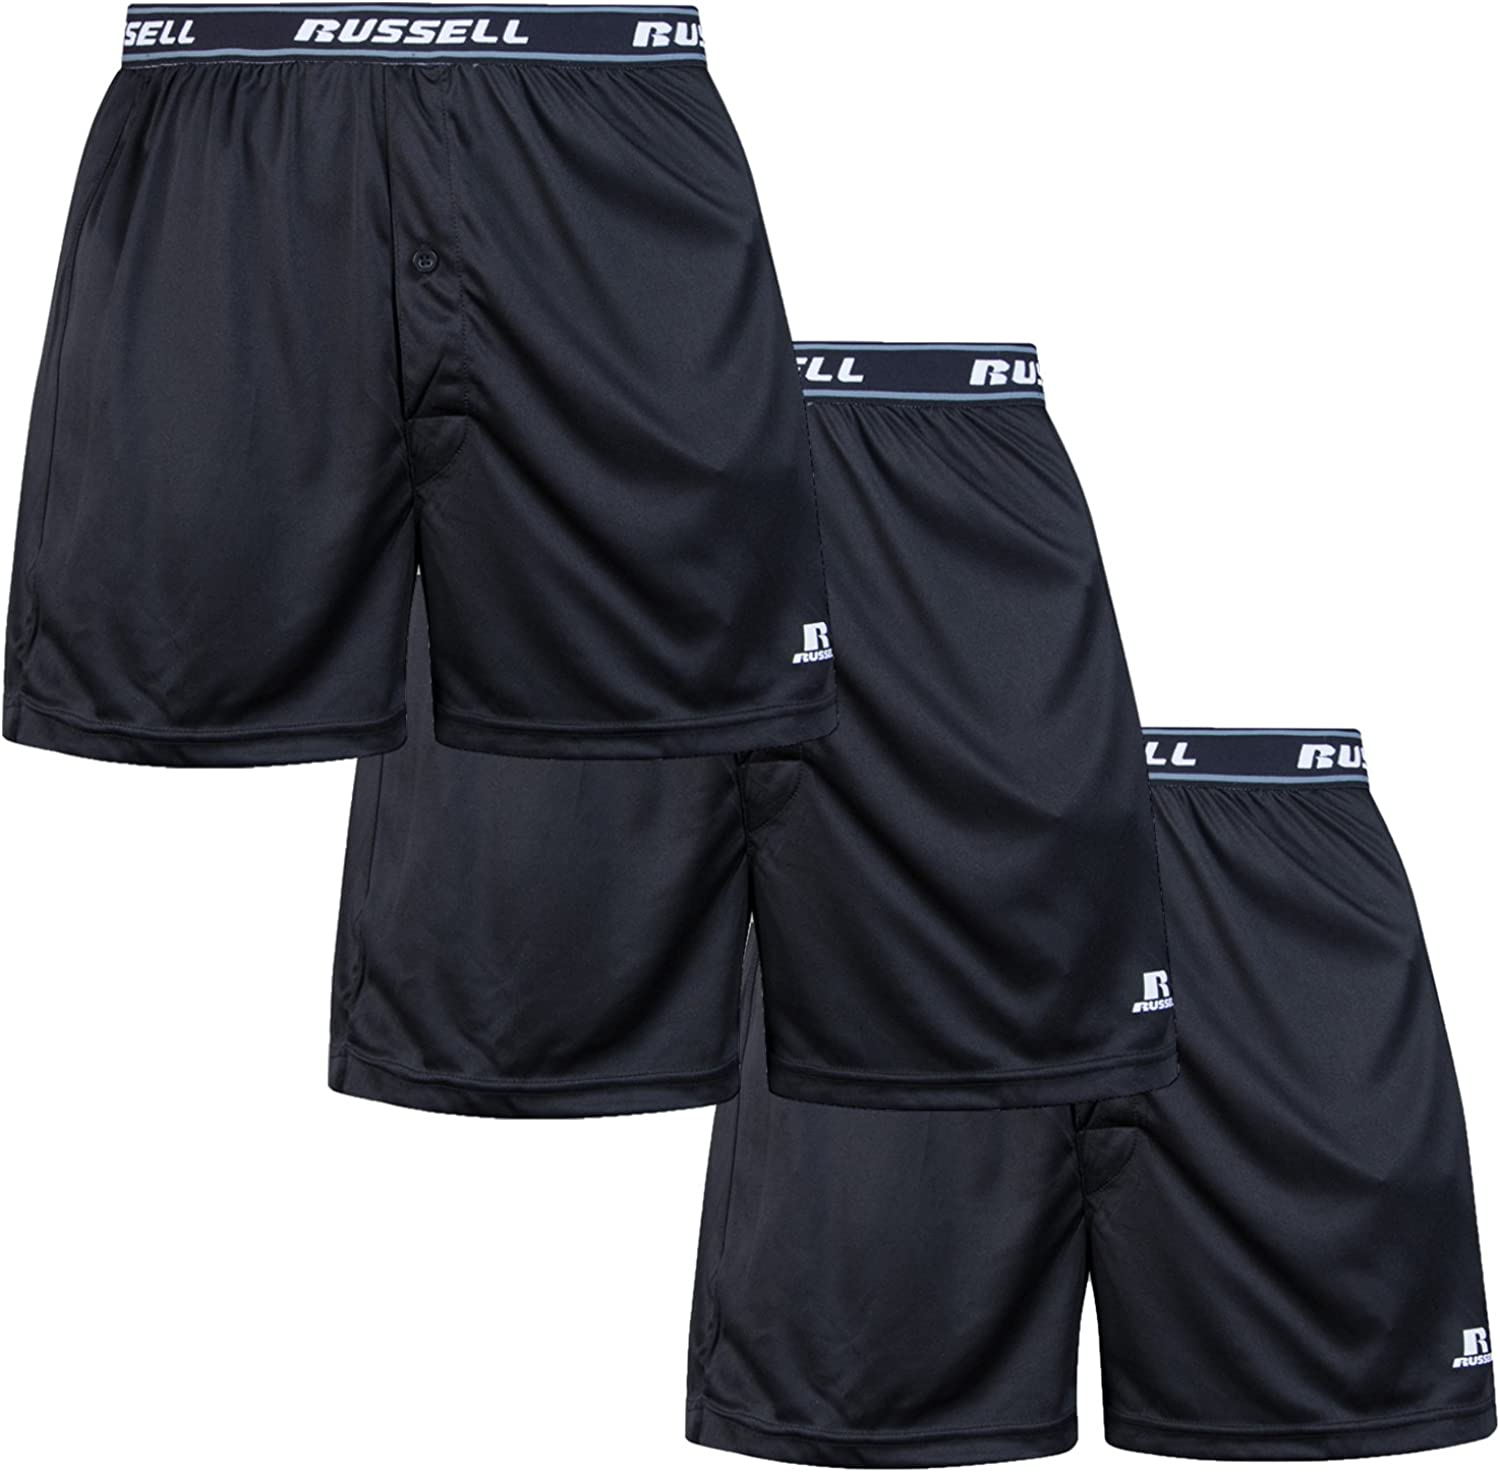 Russell Athletic Mens Big and Tall Soft Essential Boxer Brief Underwear (3 Pack) Black